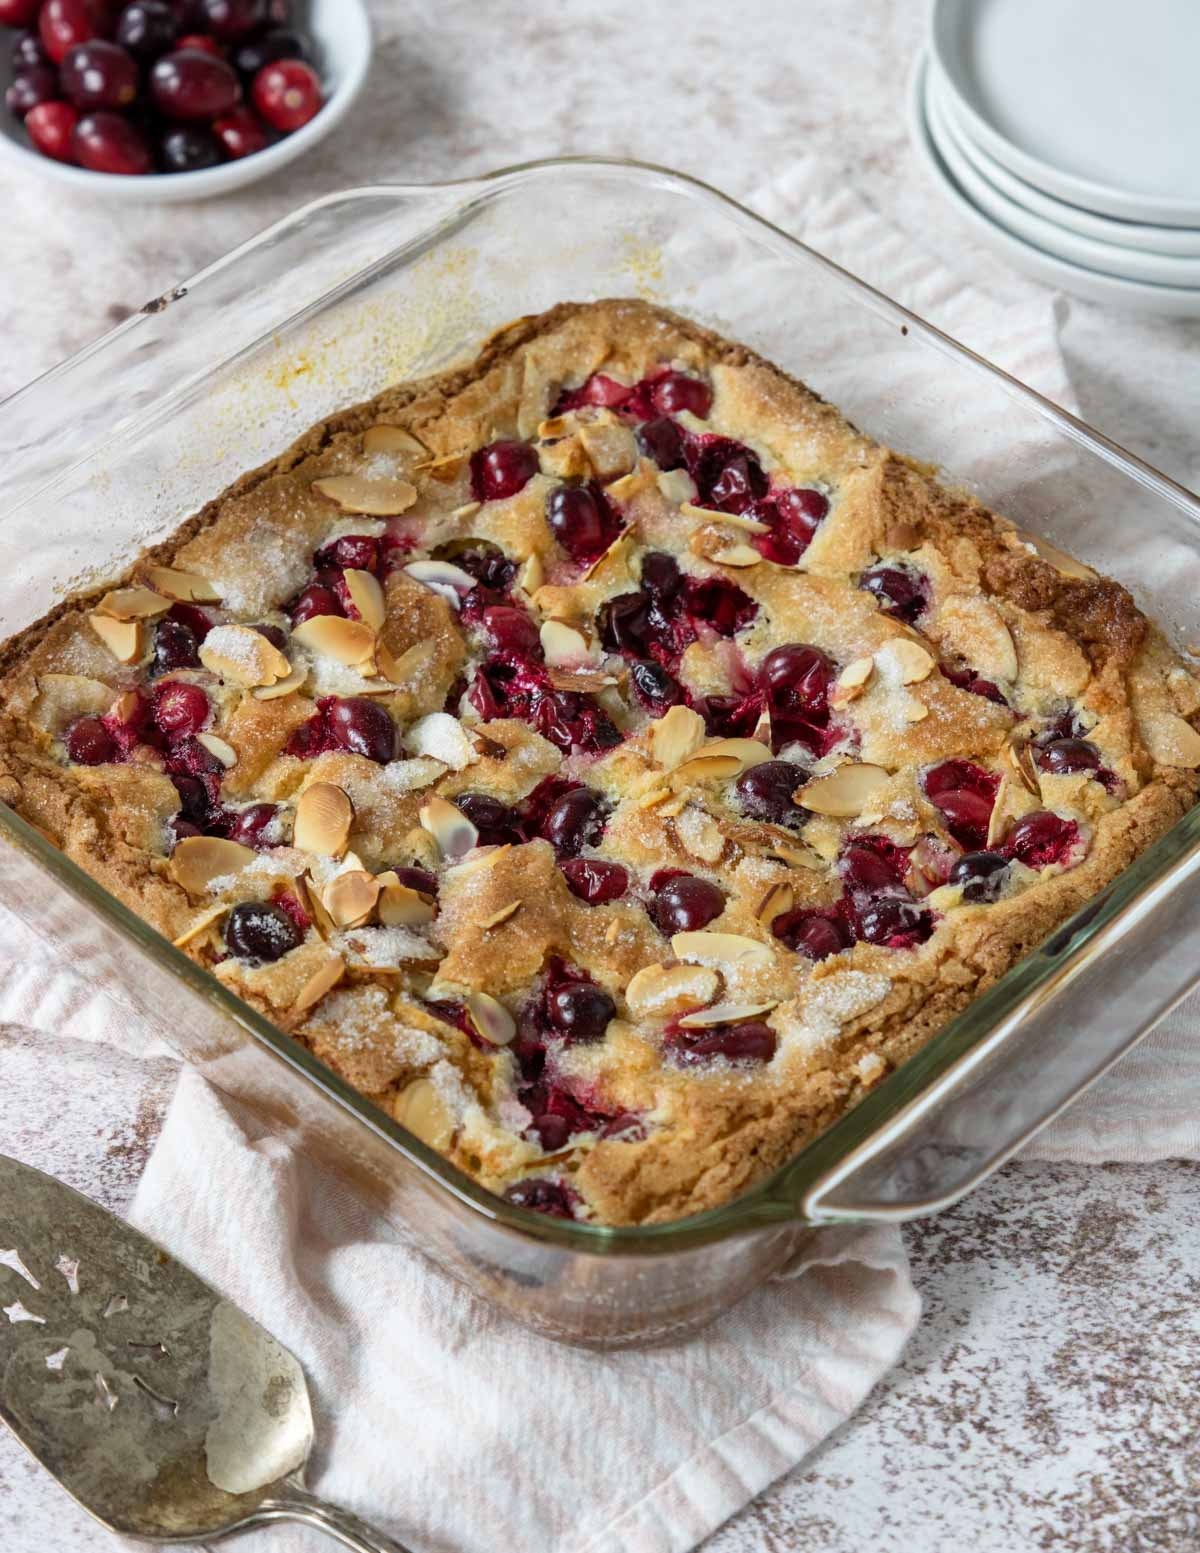 Cranberry Almond Cake in an 8x8 glass baking dish